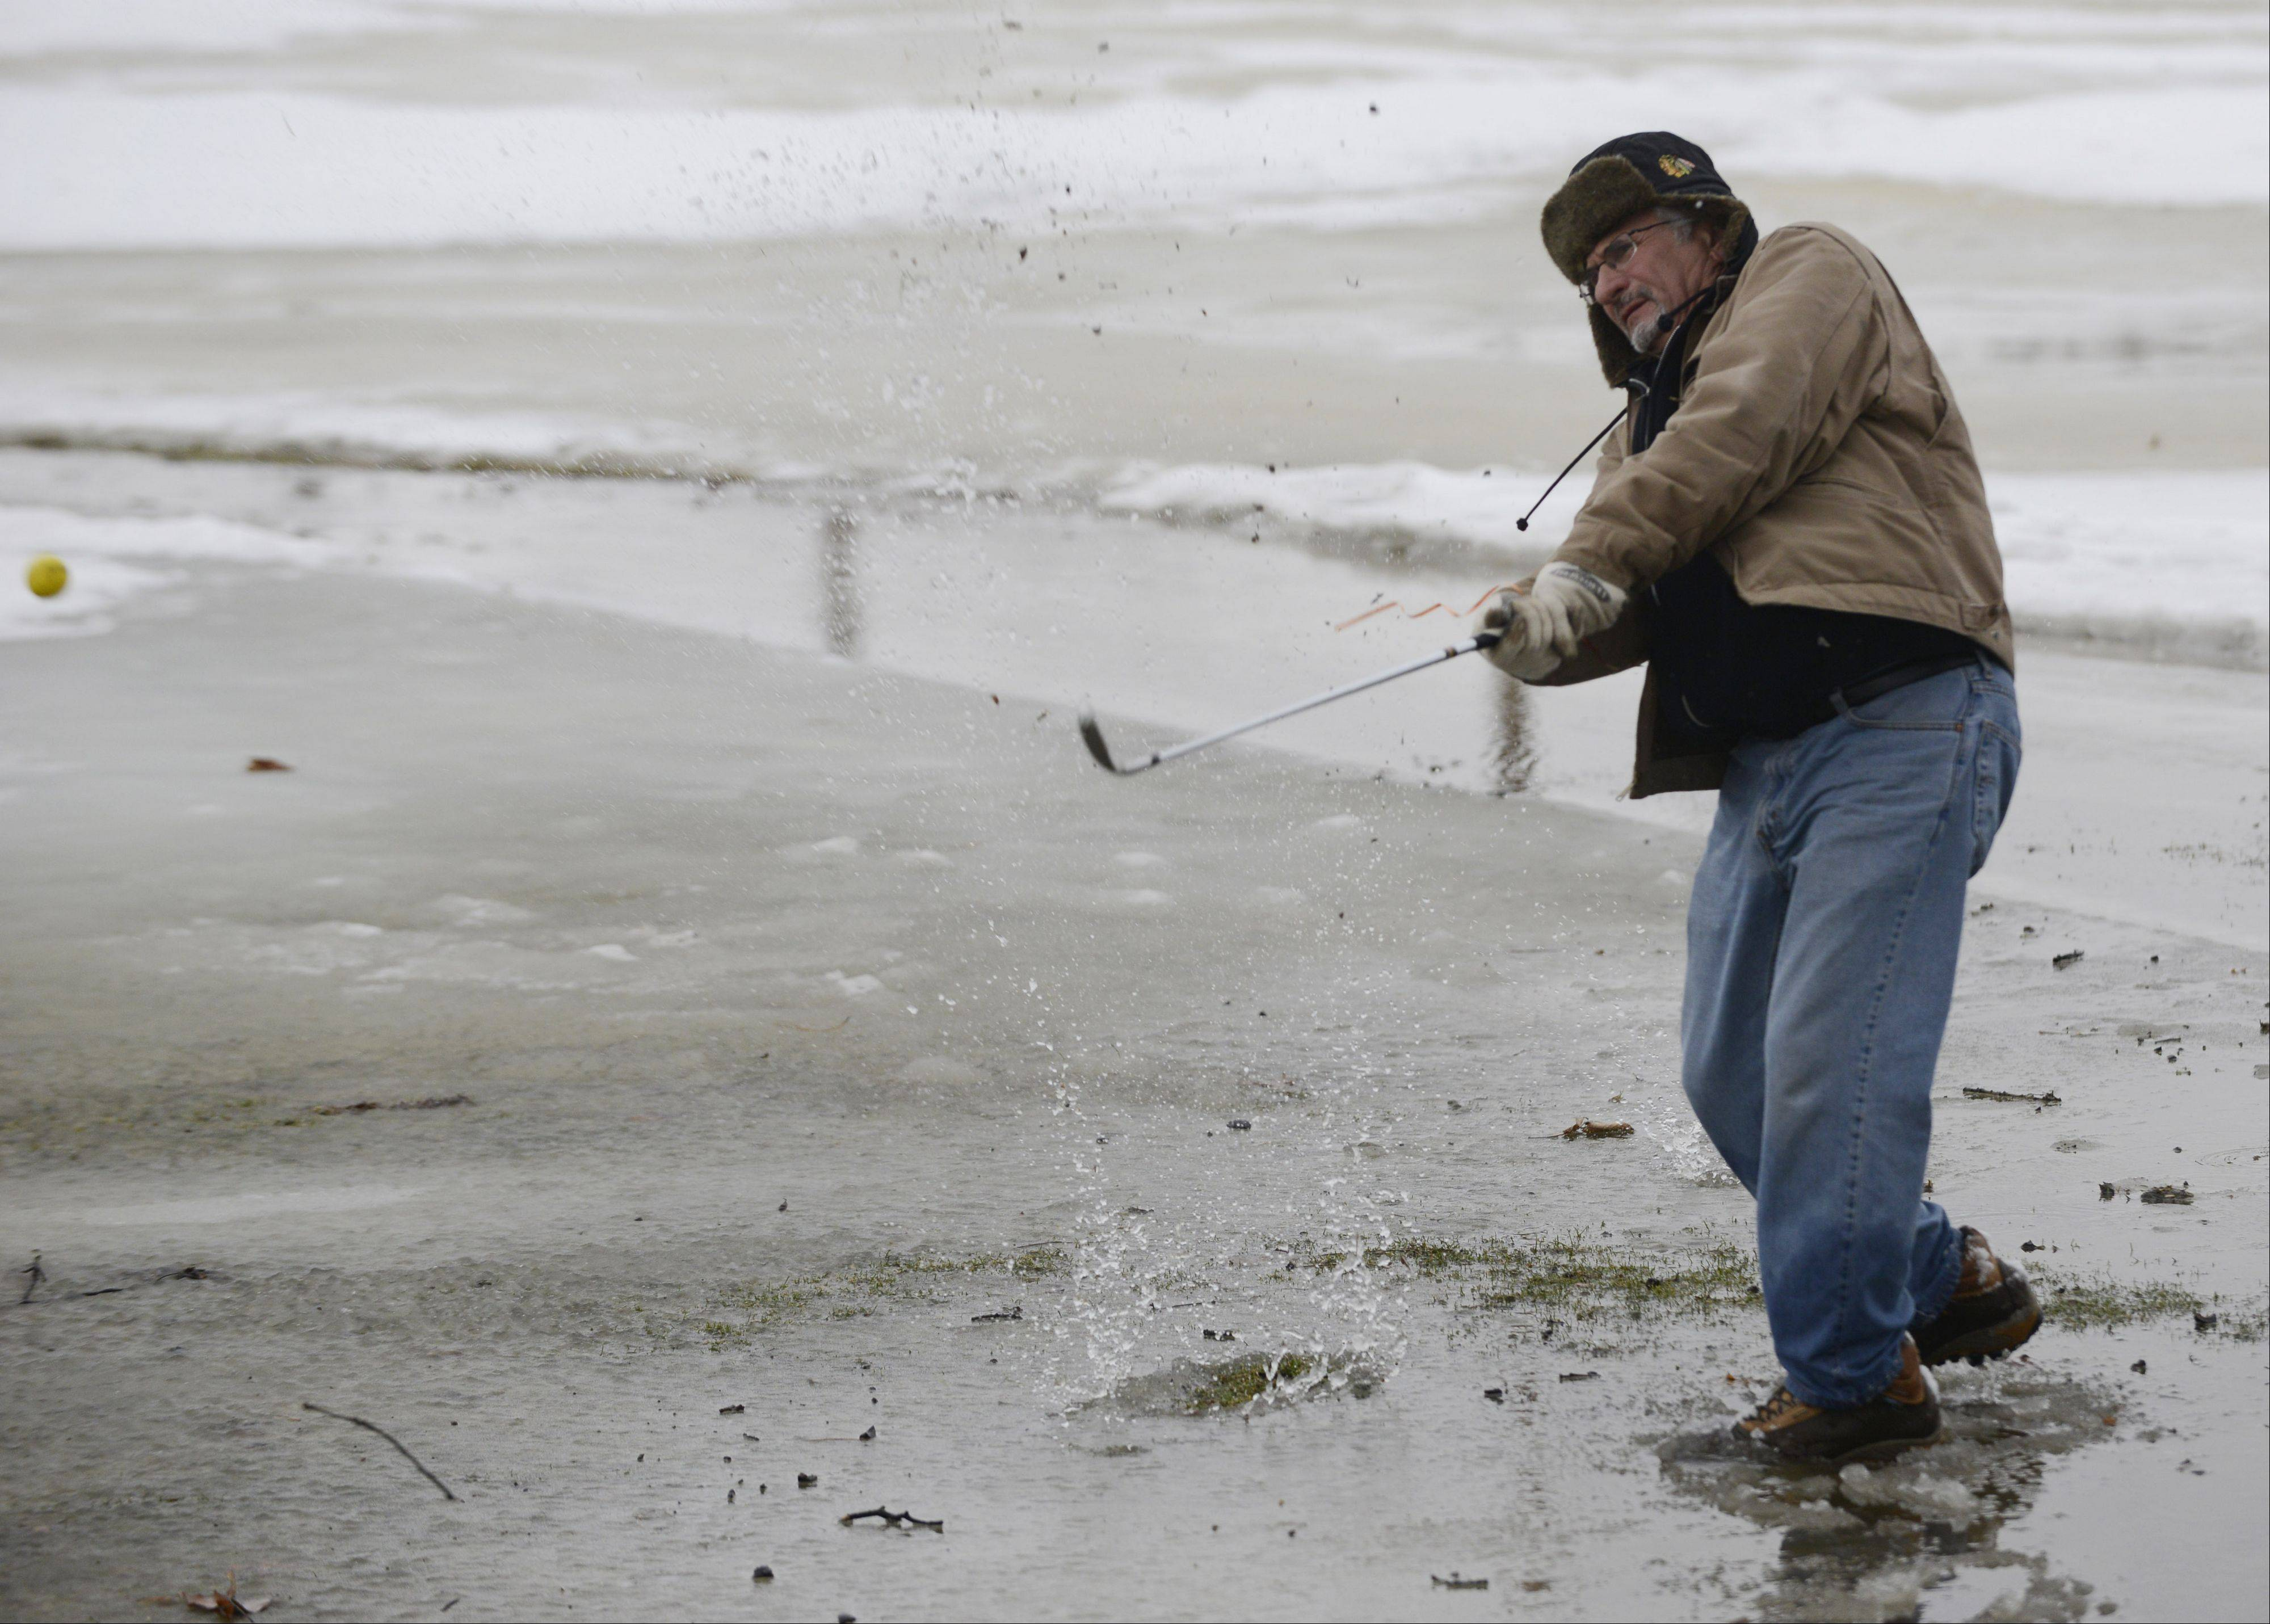 Paul Scaglione of Mount Prospect hits his ball from a puddle of melted snow Saturday during the Chili Open at the Golf Center in Des Plaines.